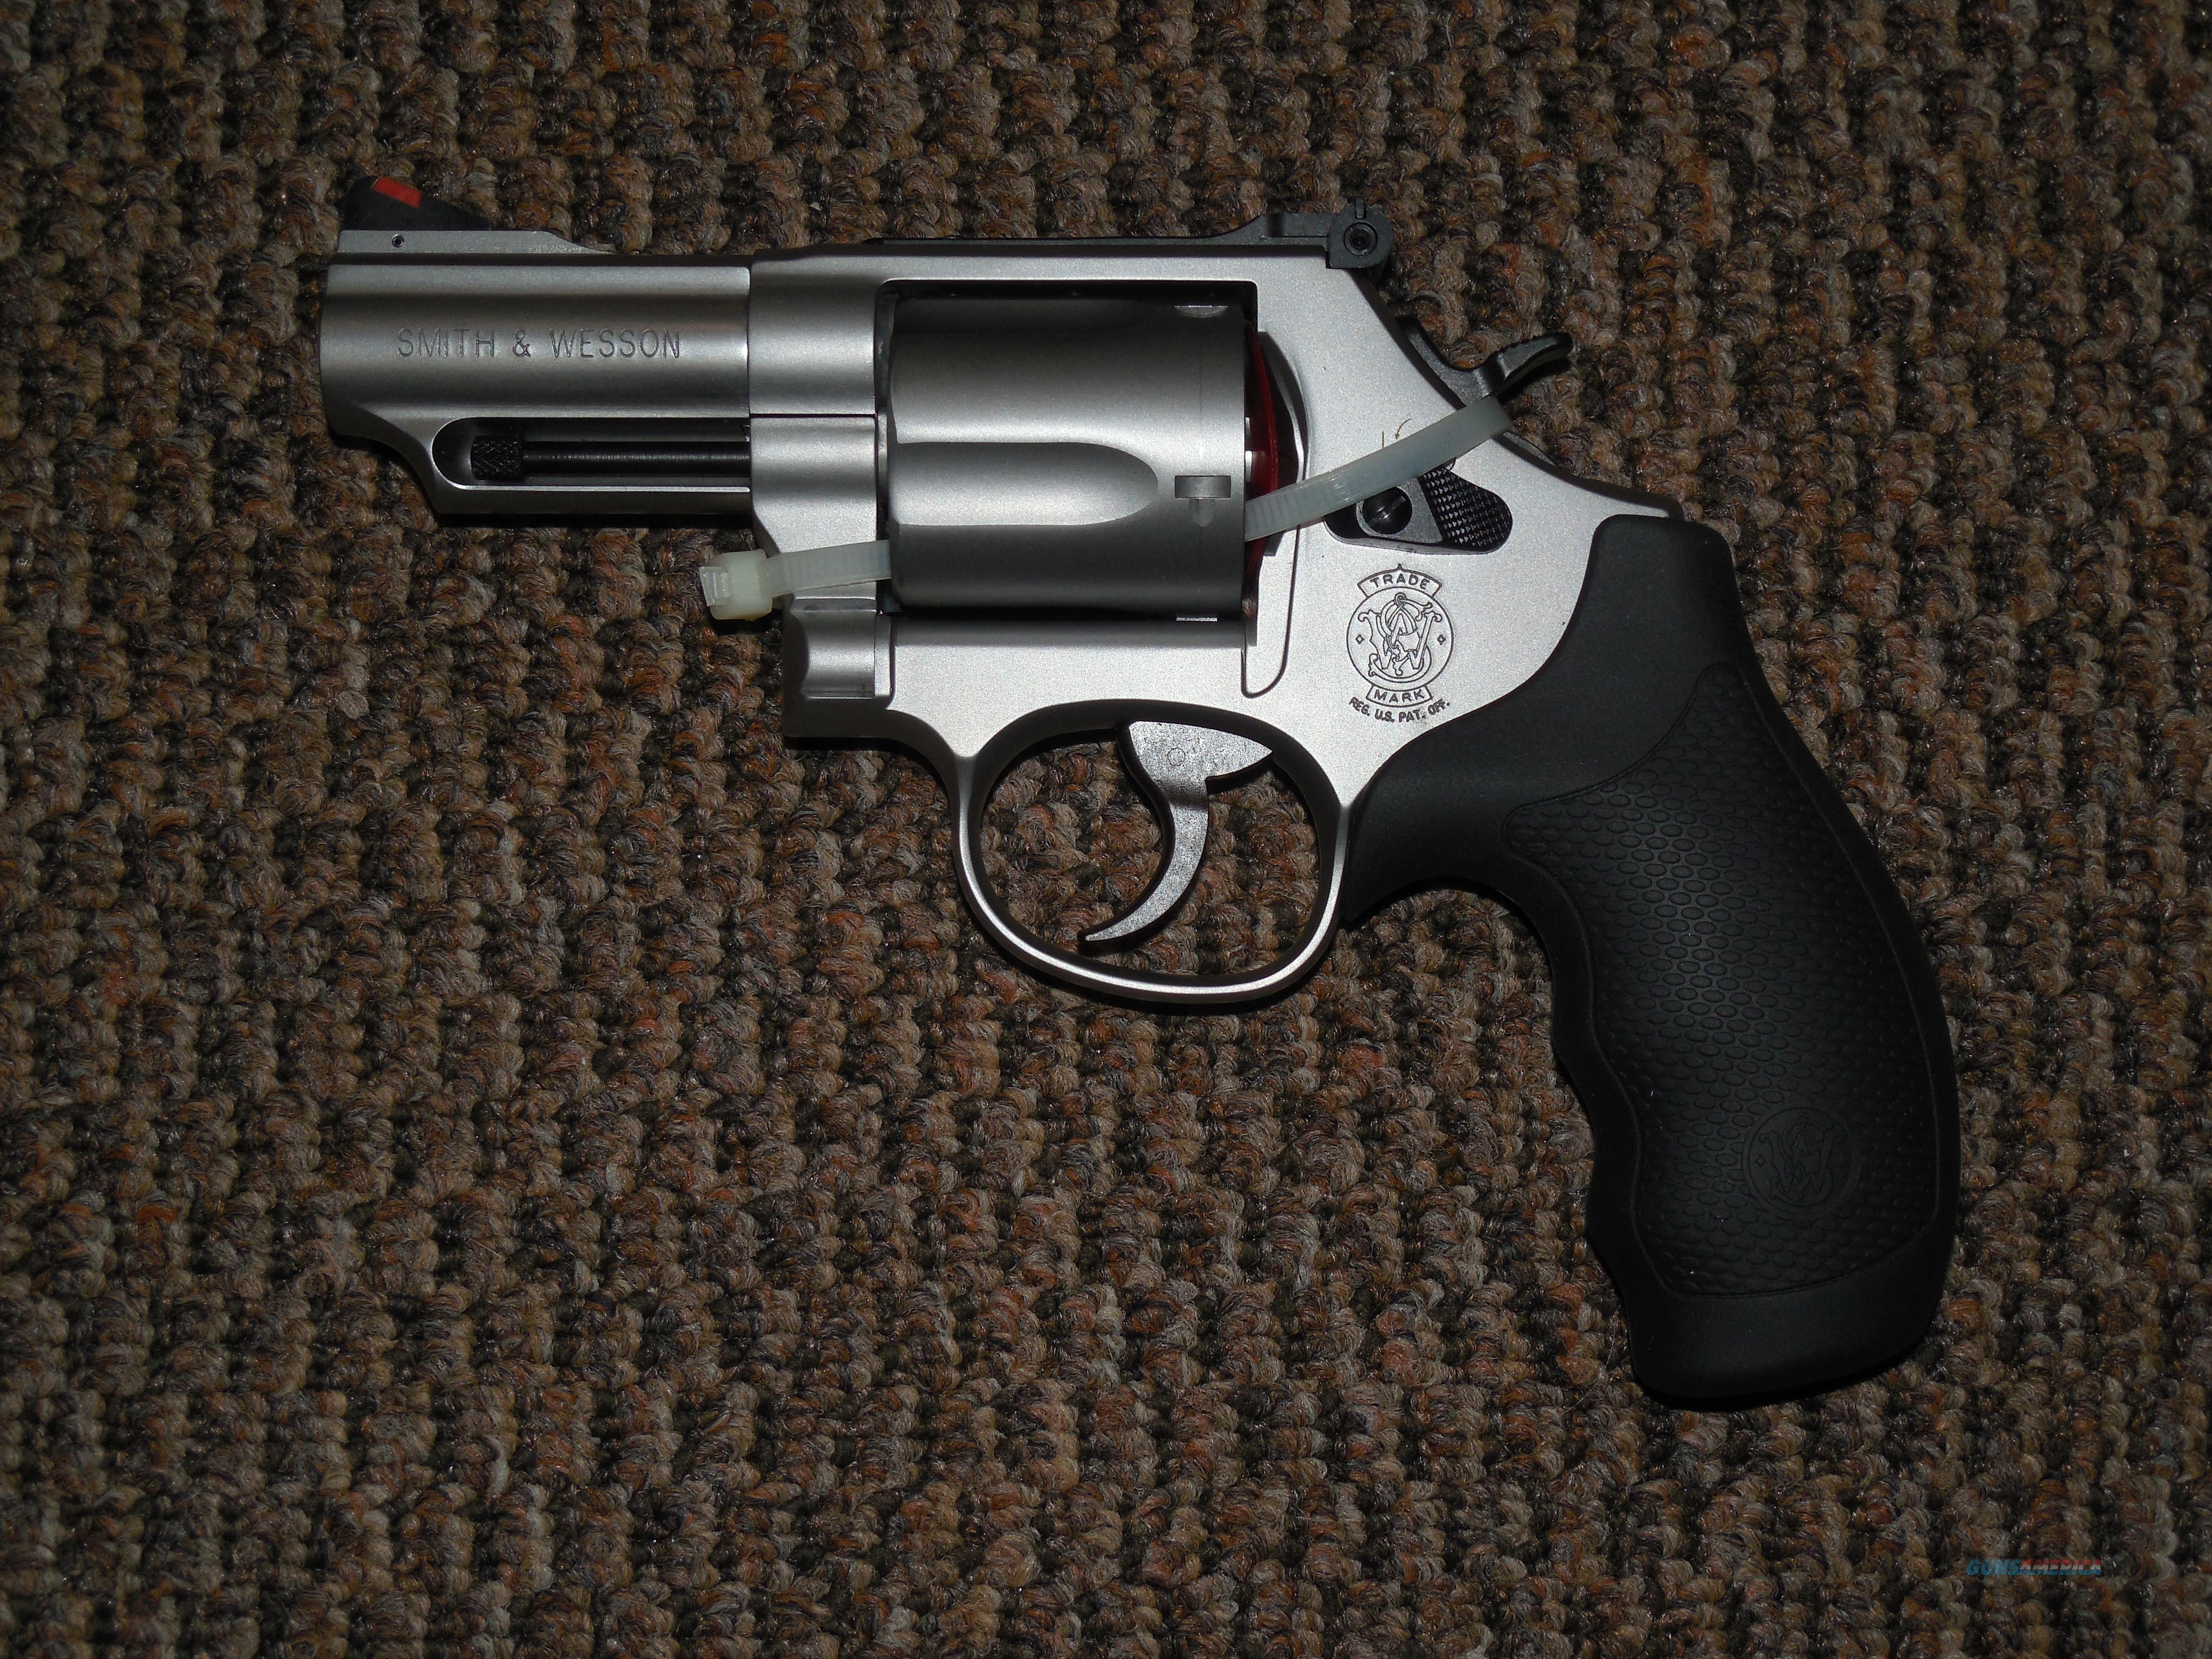 S&W MODEL 69 FIVE-SHOT .44 MAGNUM WITH 2-3/4-INCH BARREL  Guns > Pistols > Smith & Wesson Revolvers > Full Frame Revolver